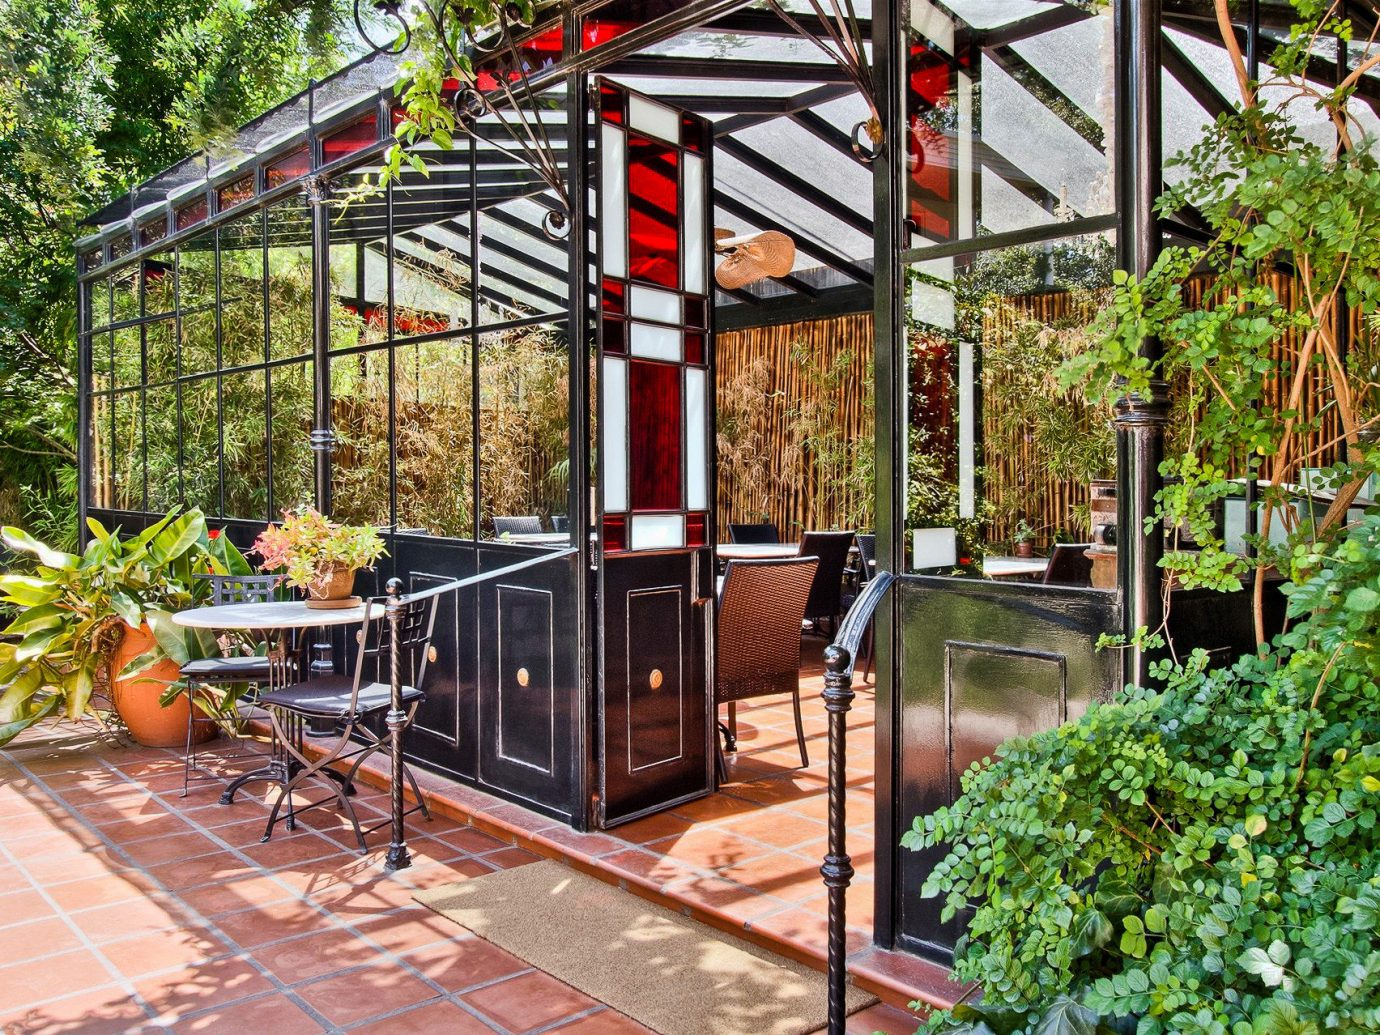 Boutique Hotels Luxury Travel tree outdoor building outdoor structure real estate greenhouse backyard Patio roof pergola Courtyard